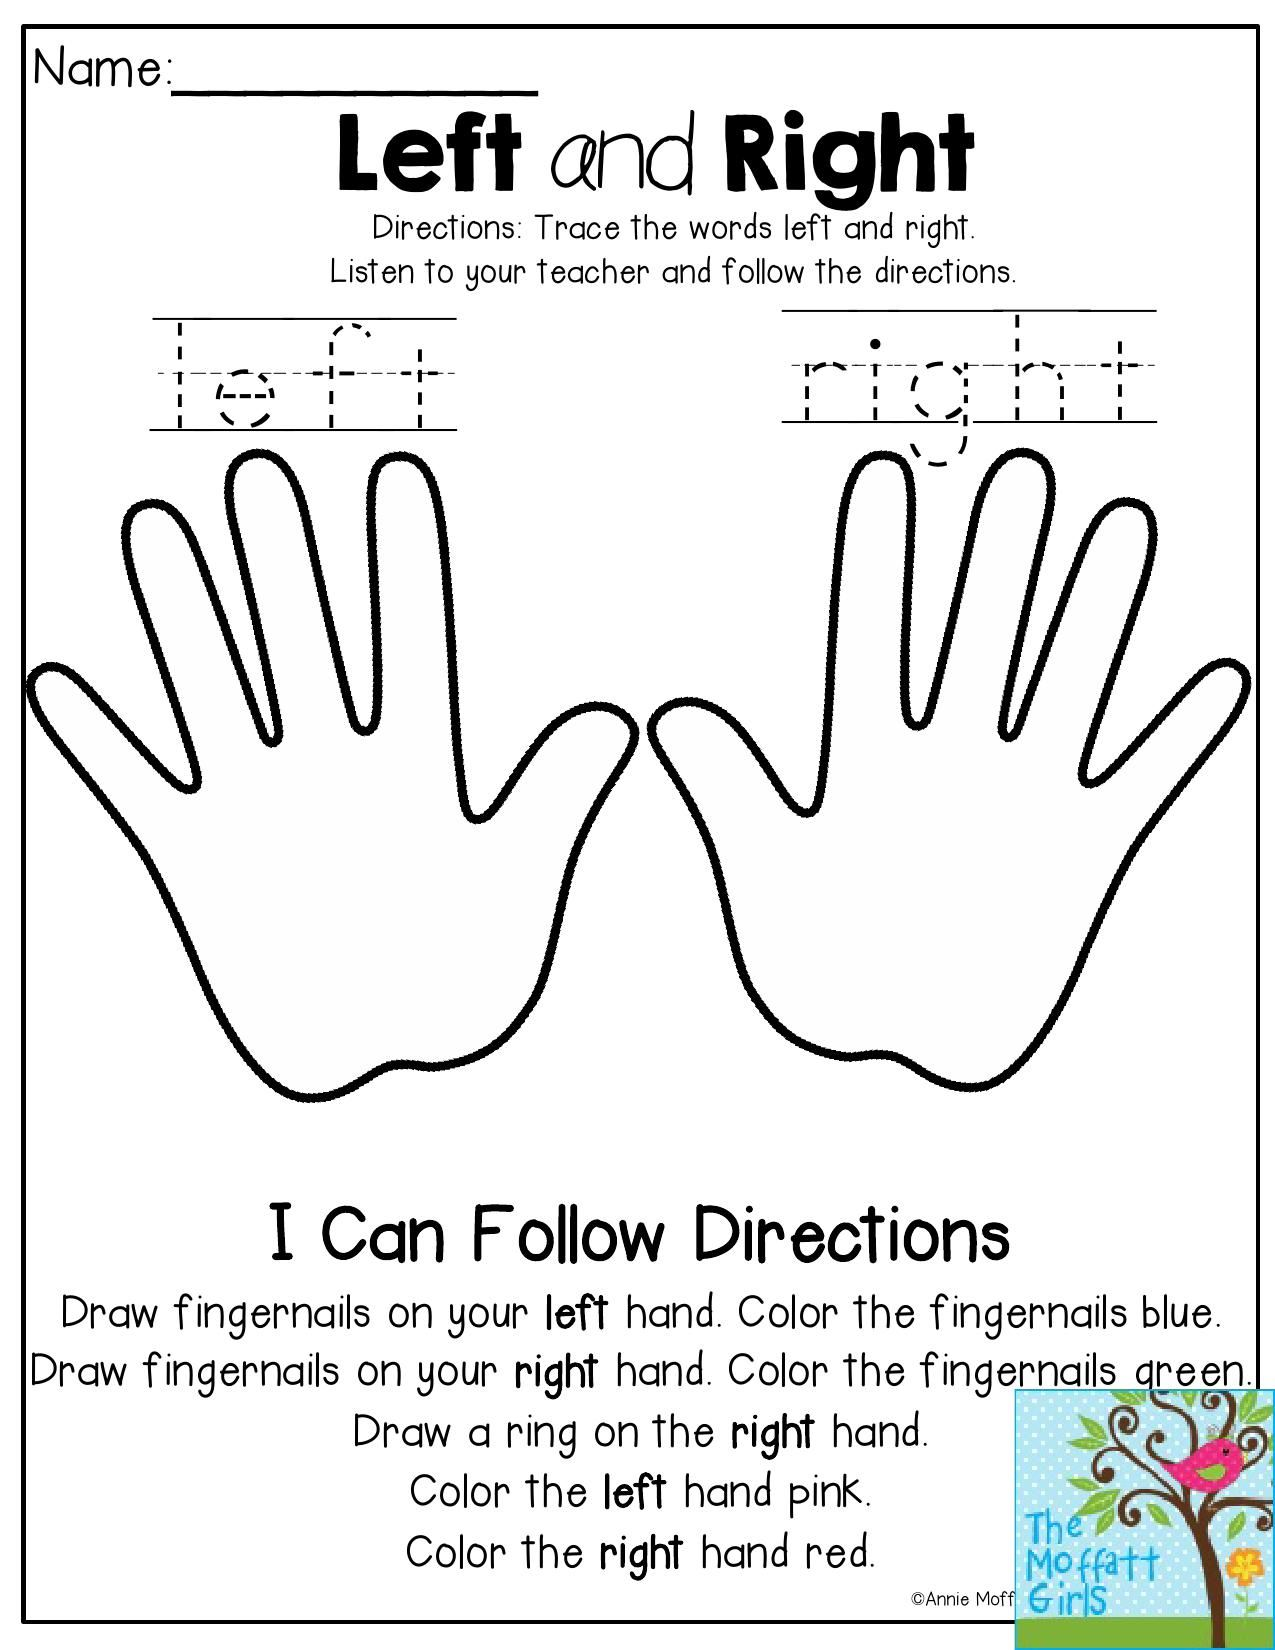 Left And Right Listen To The Teacher And Follow The Directions This Is Such A Fun Activity To